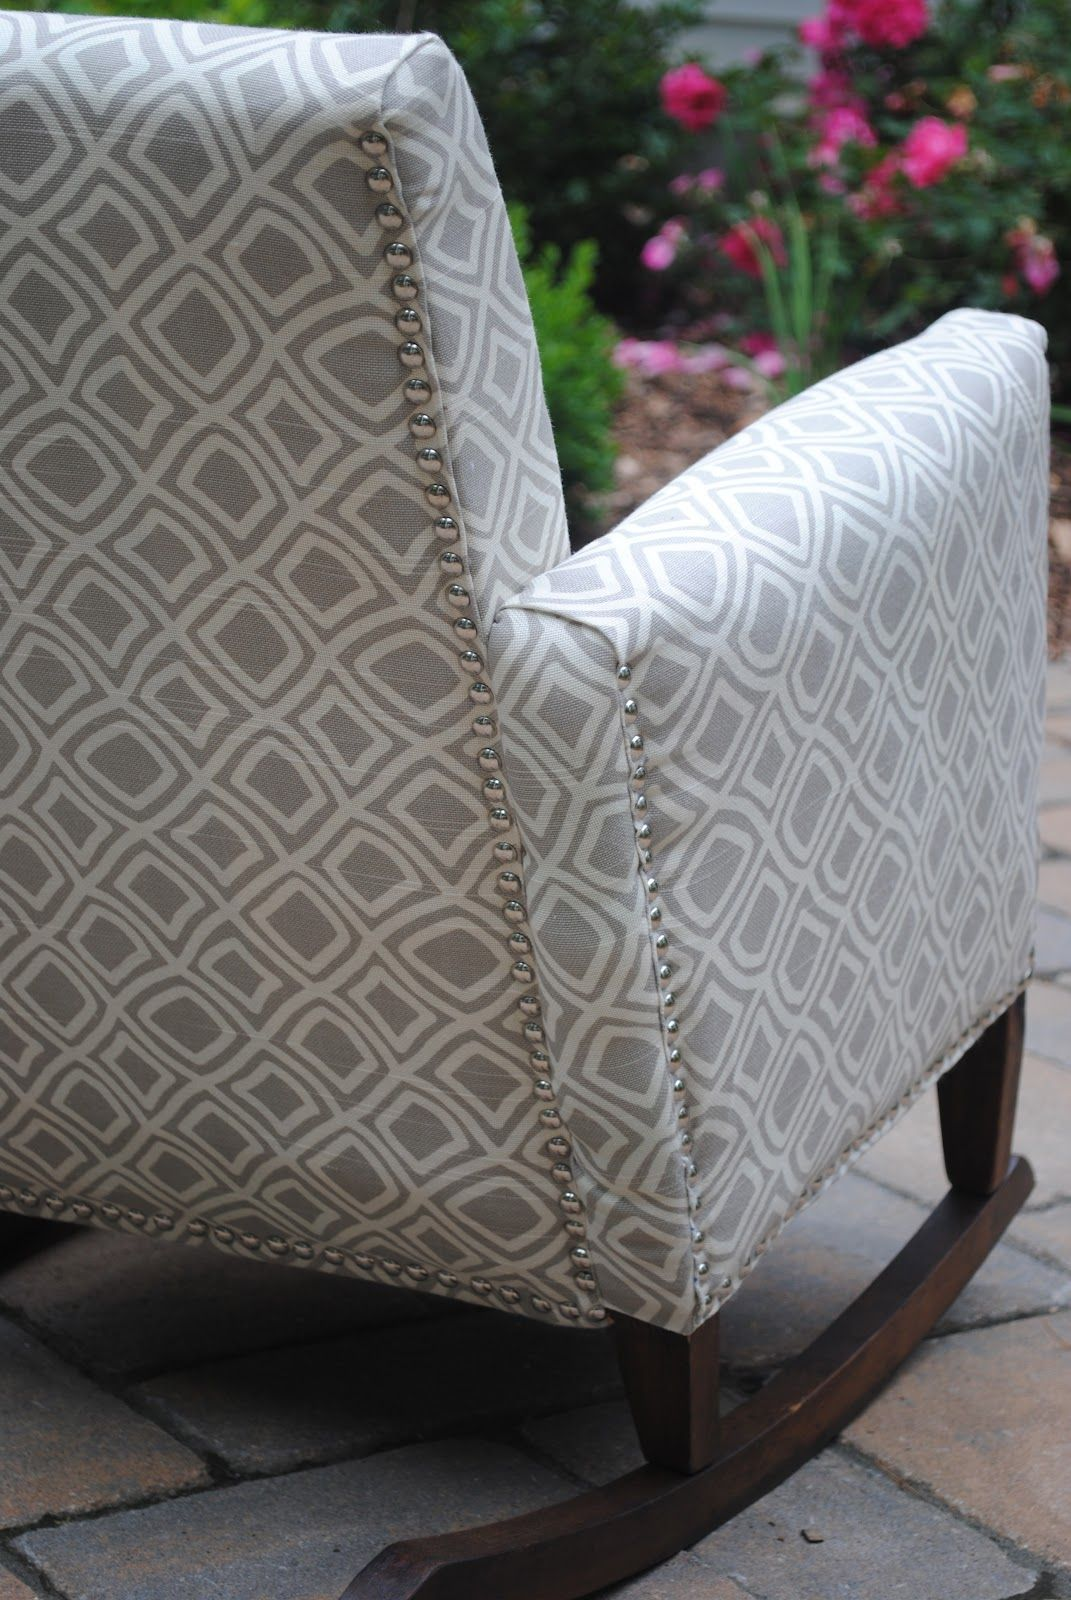 Nailhead detail on child's upholstered rocking chair